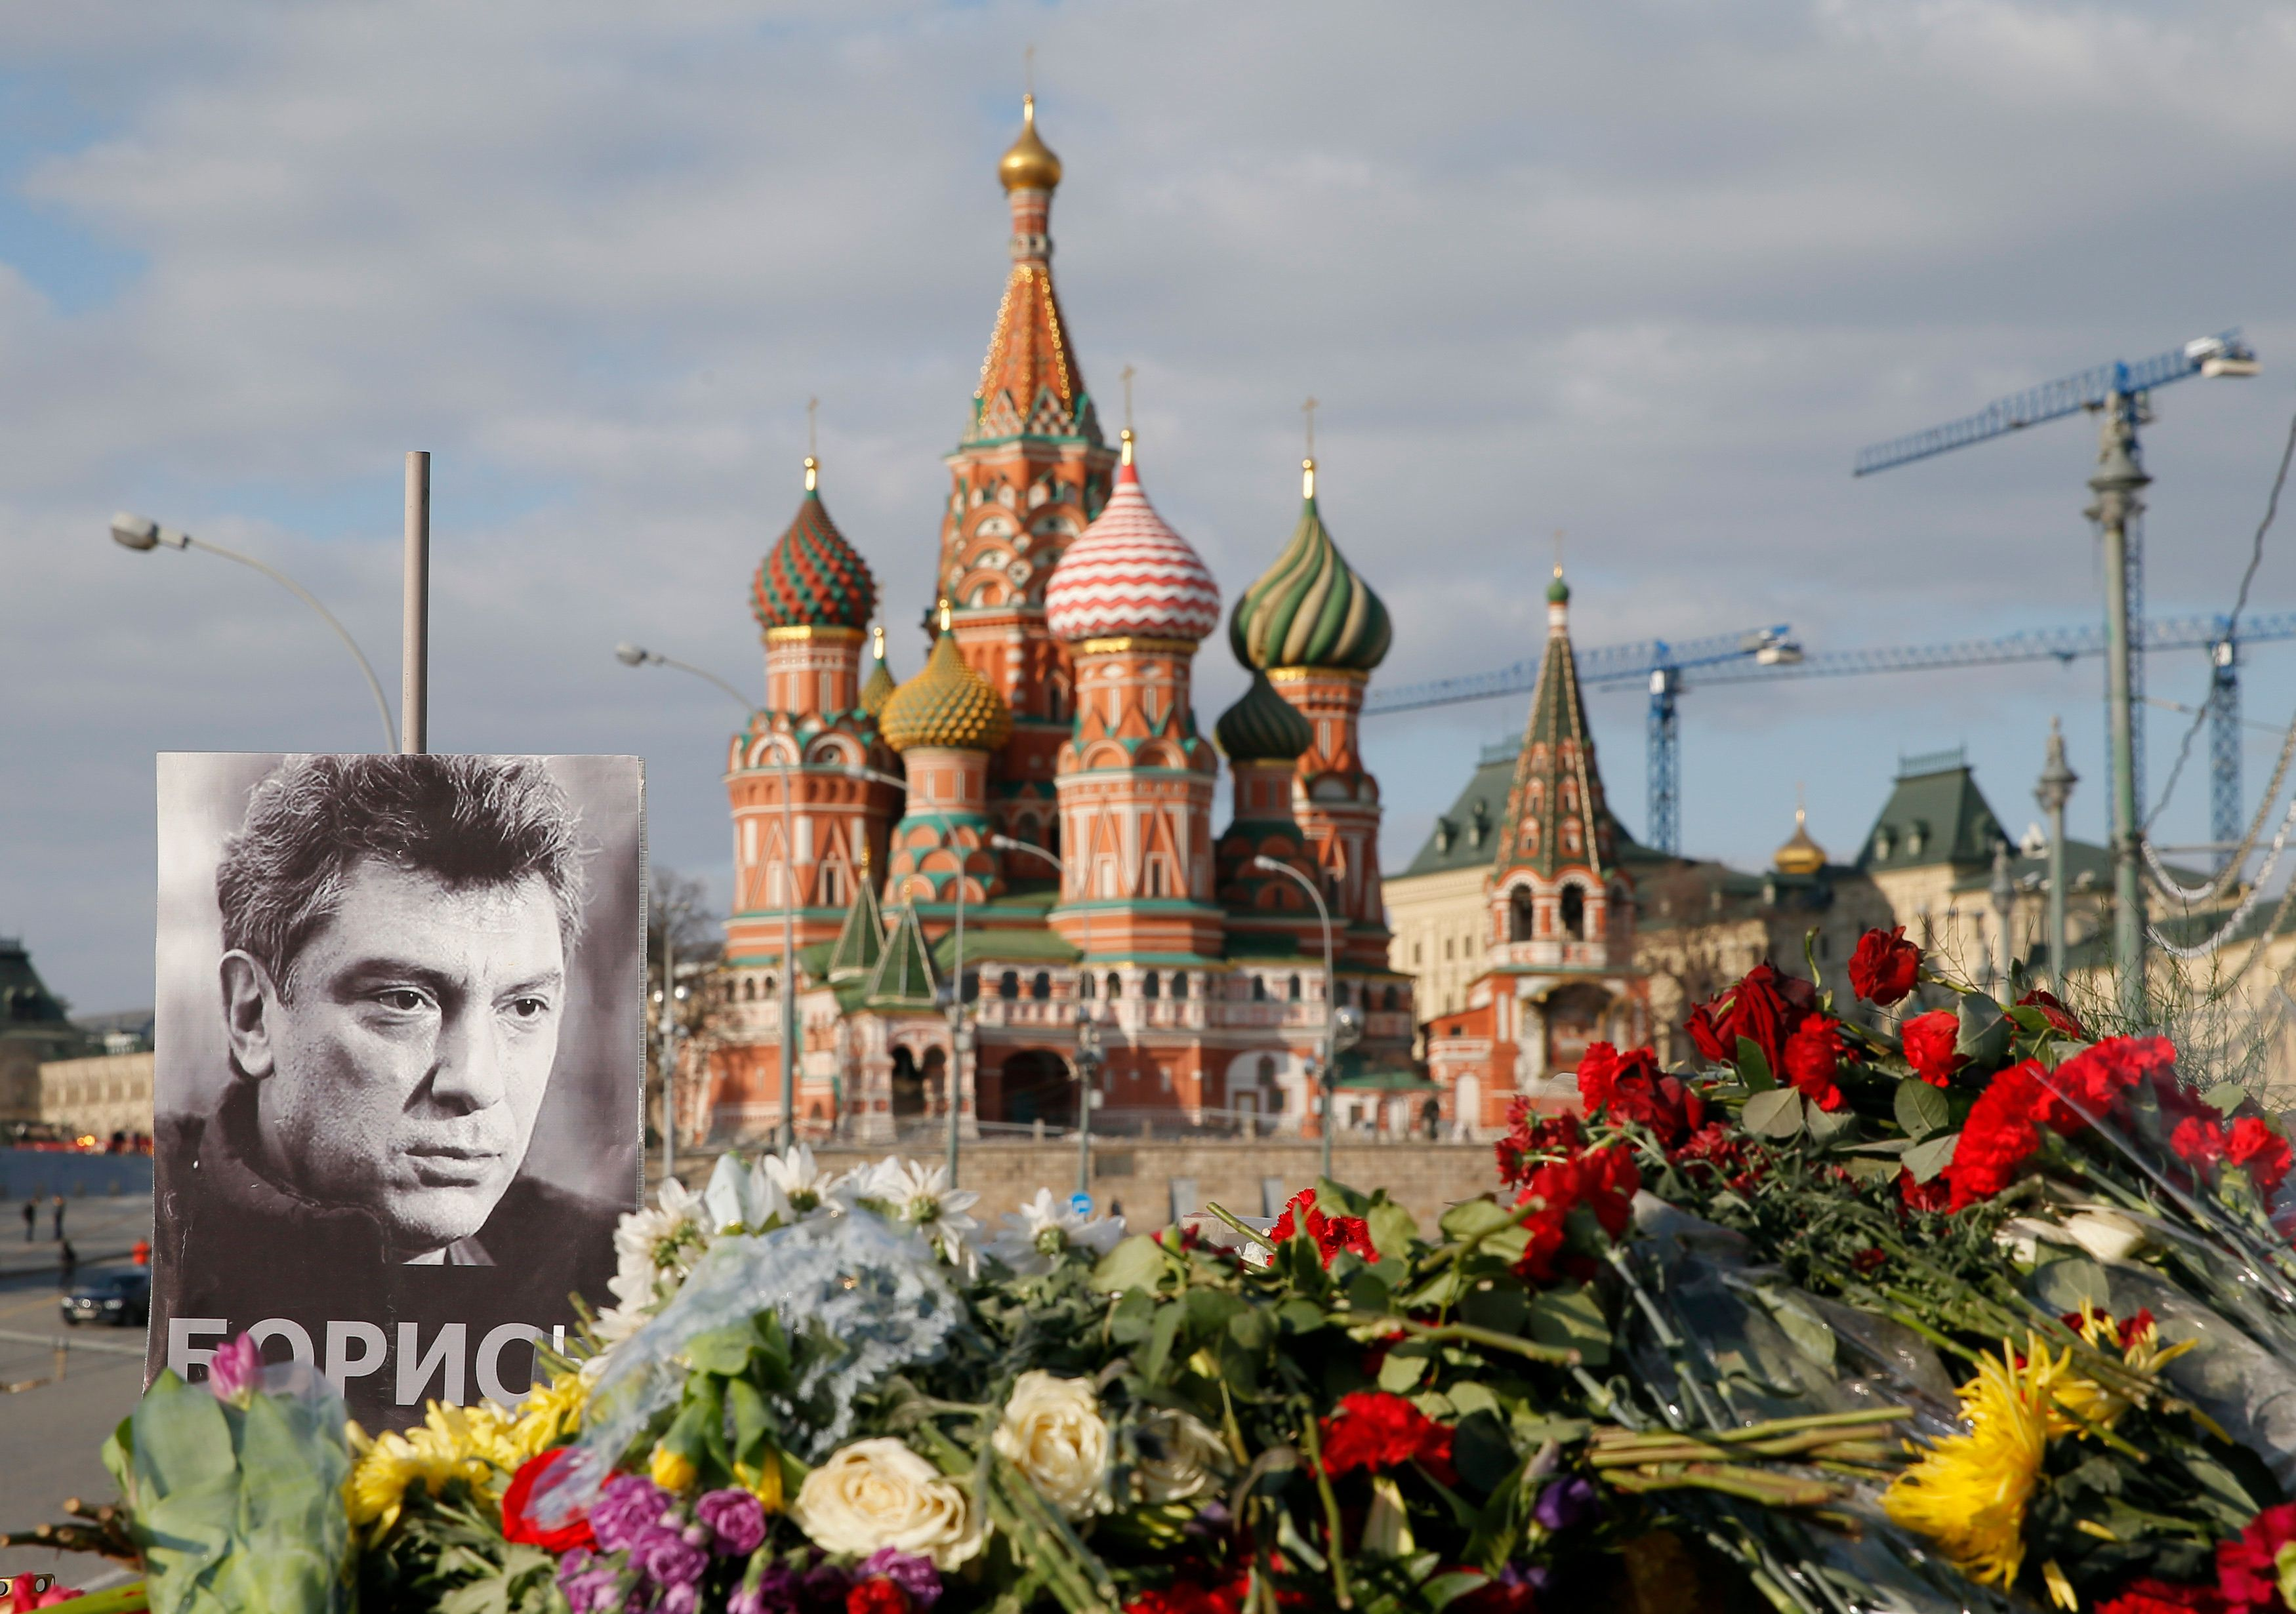 The Kremlin critic was assassinated two years ago.